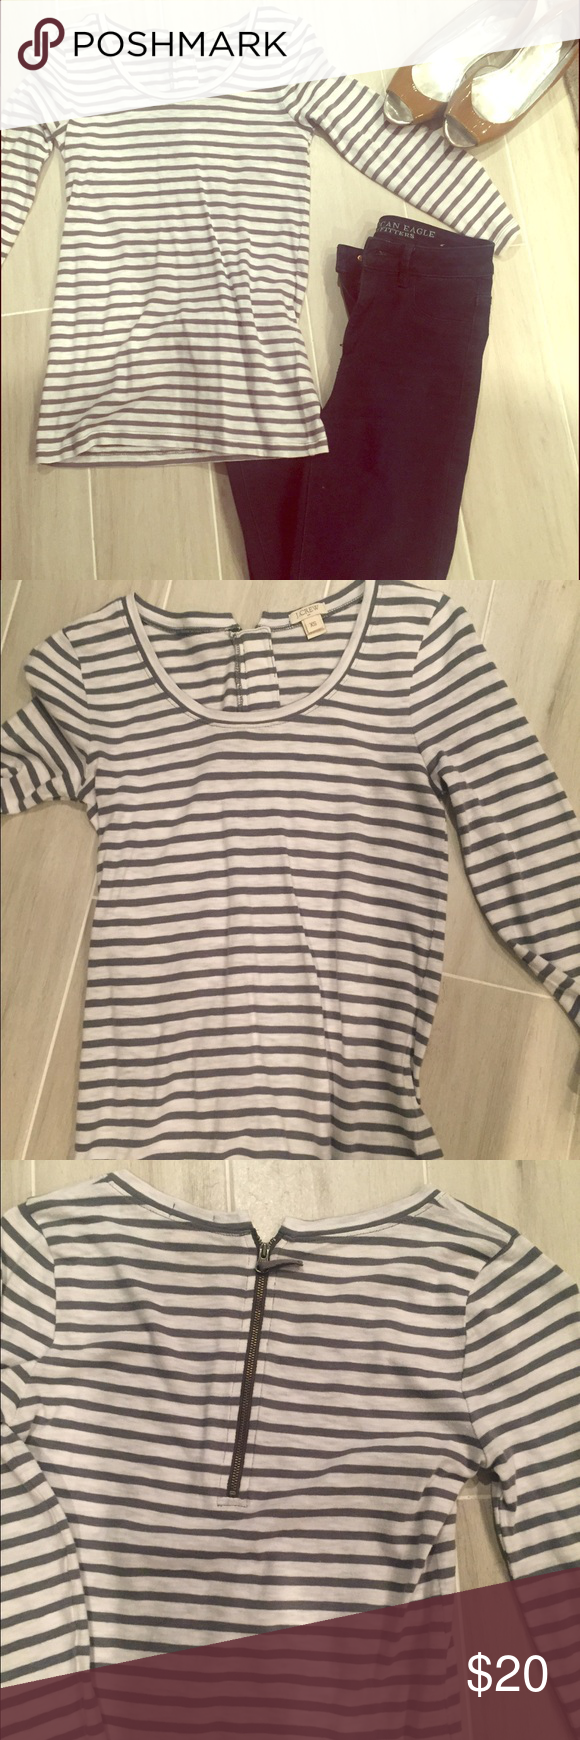 Jcrew top.  Size XS Cute white with gray stripes.  Only worn once. So cute! J. Crew Tops Tees - Short Sleeve